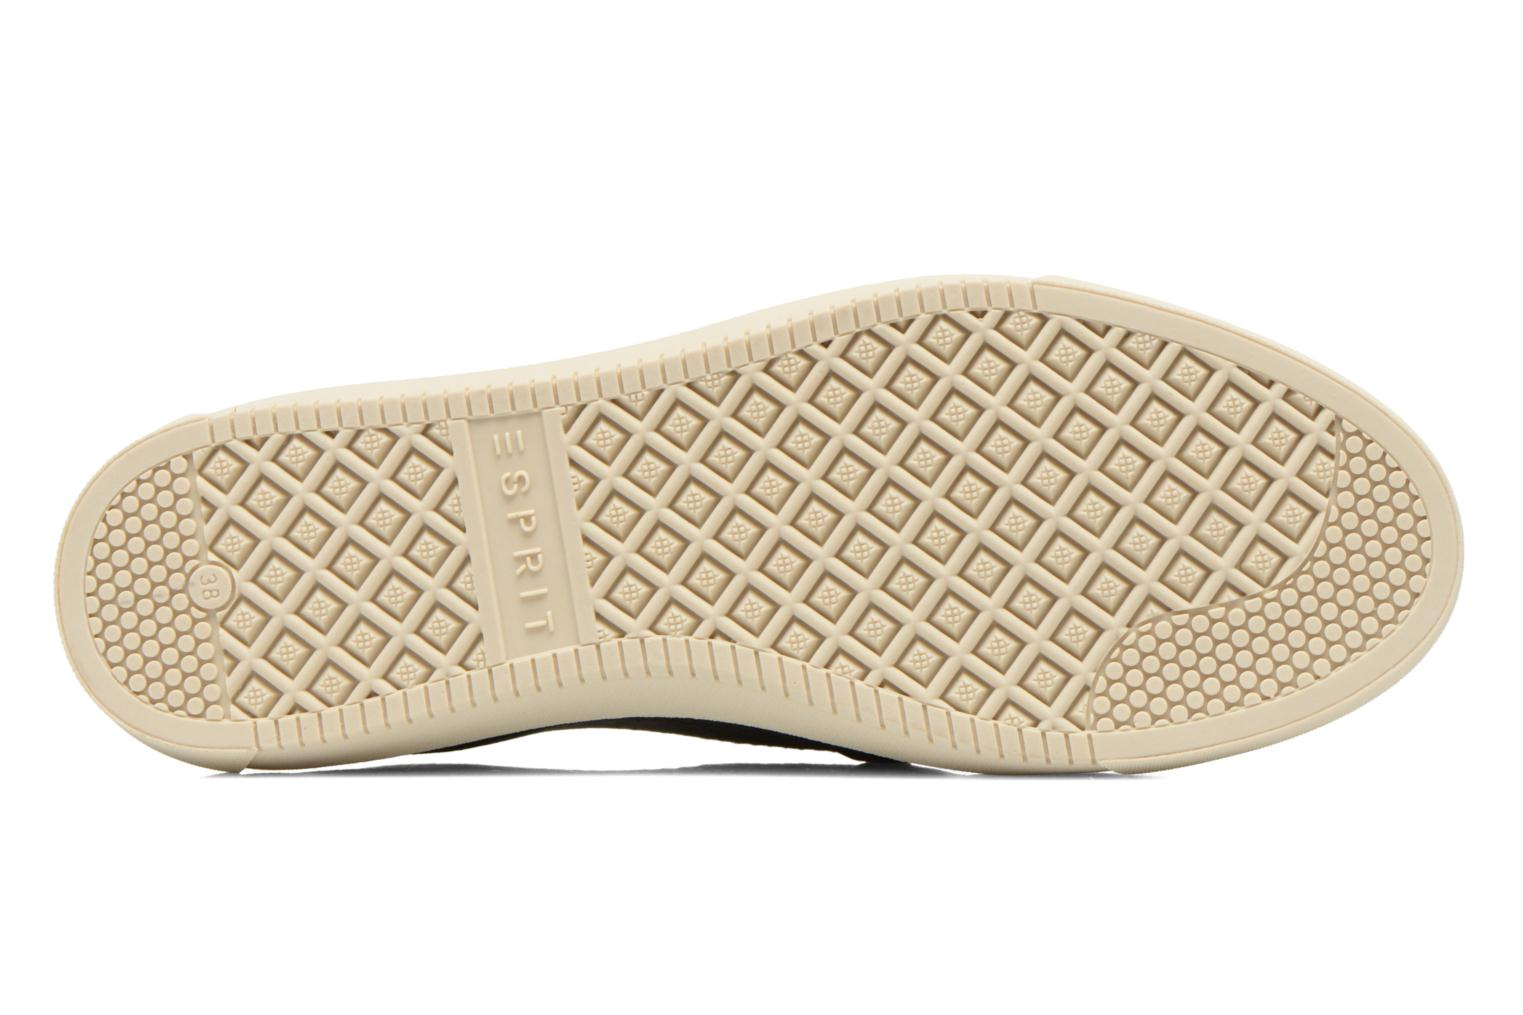 Trainers Esprit Yendis Slip on 009 Black view from above